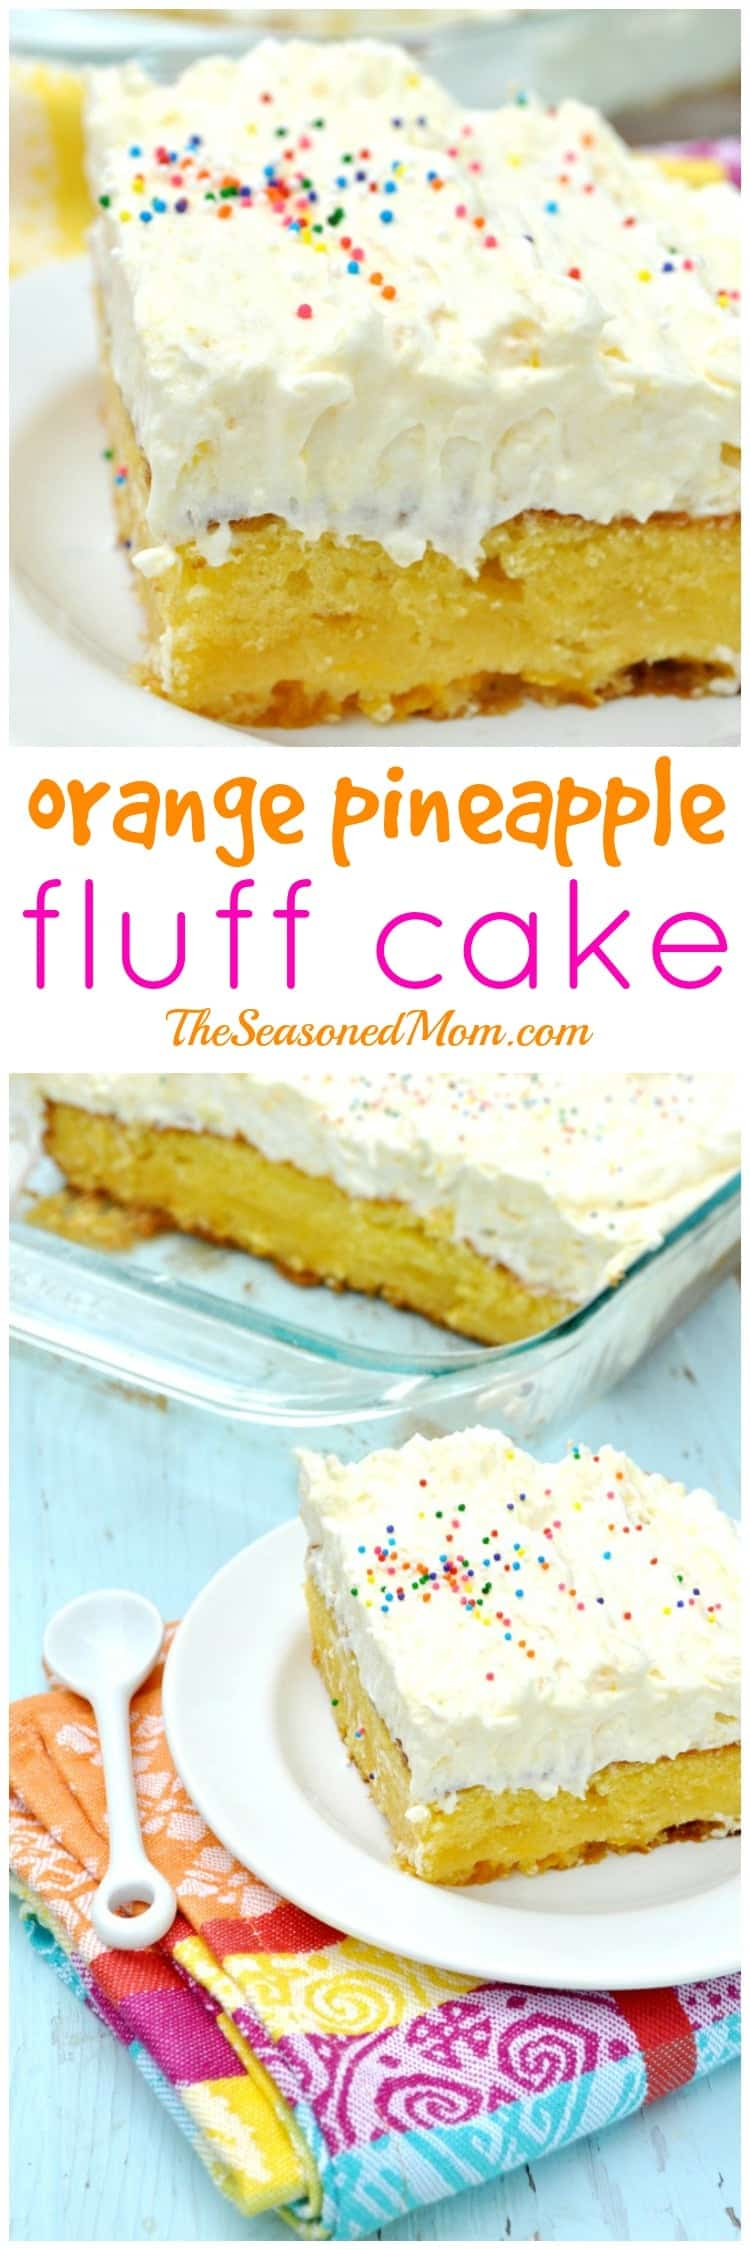 Orange Pineapple Cake